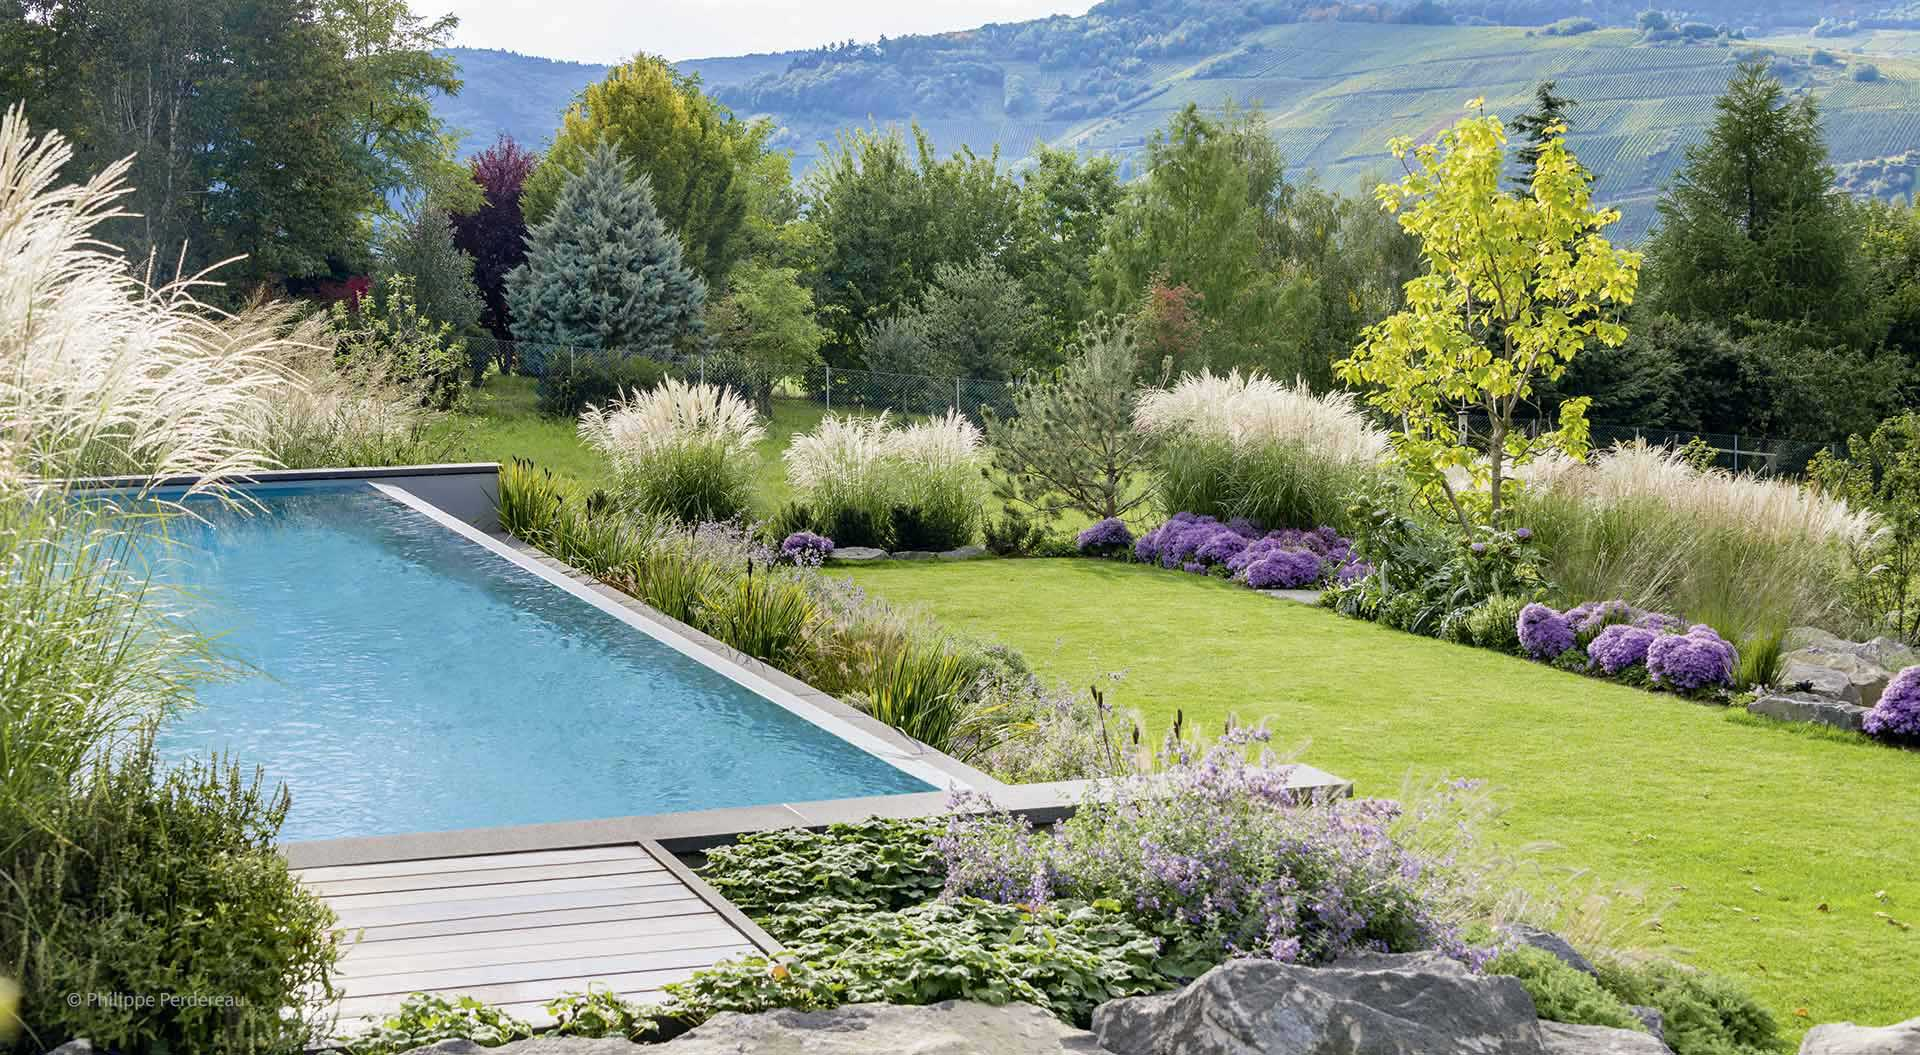 Colourful varied garden with pool and nice distant view